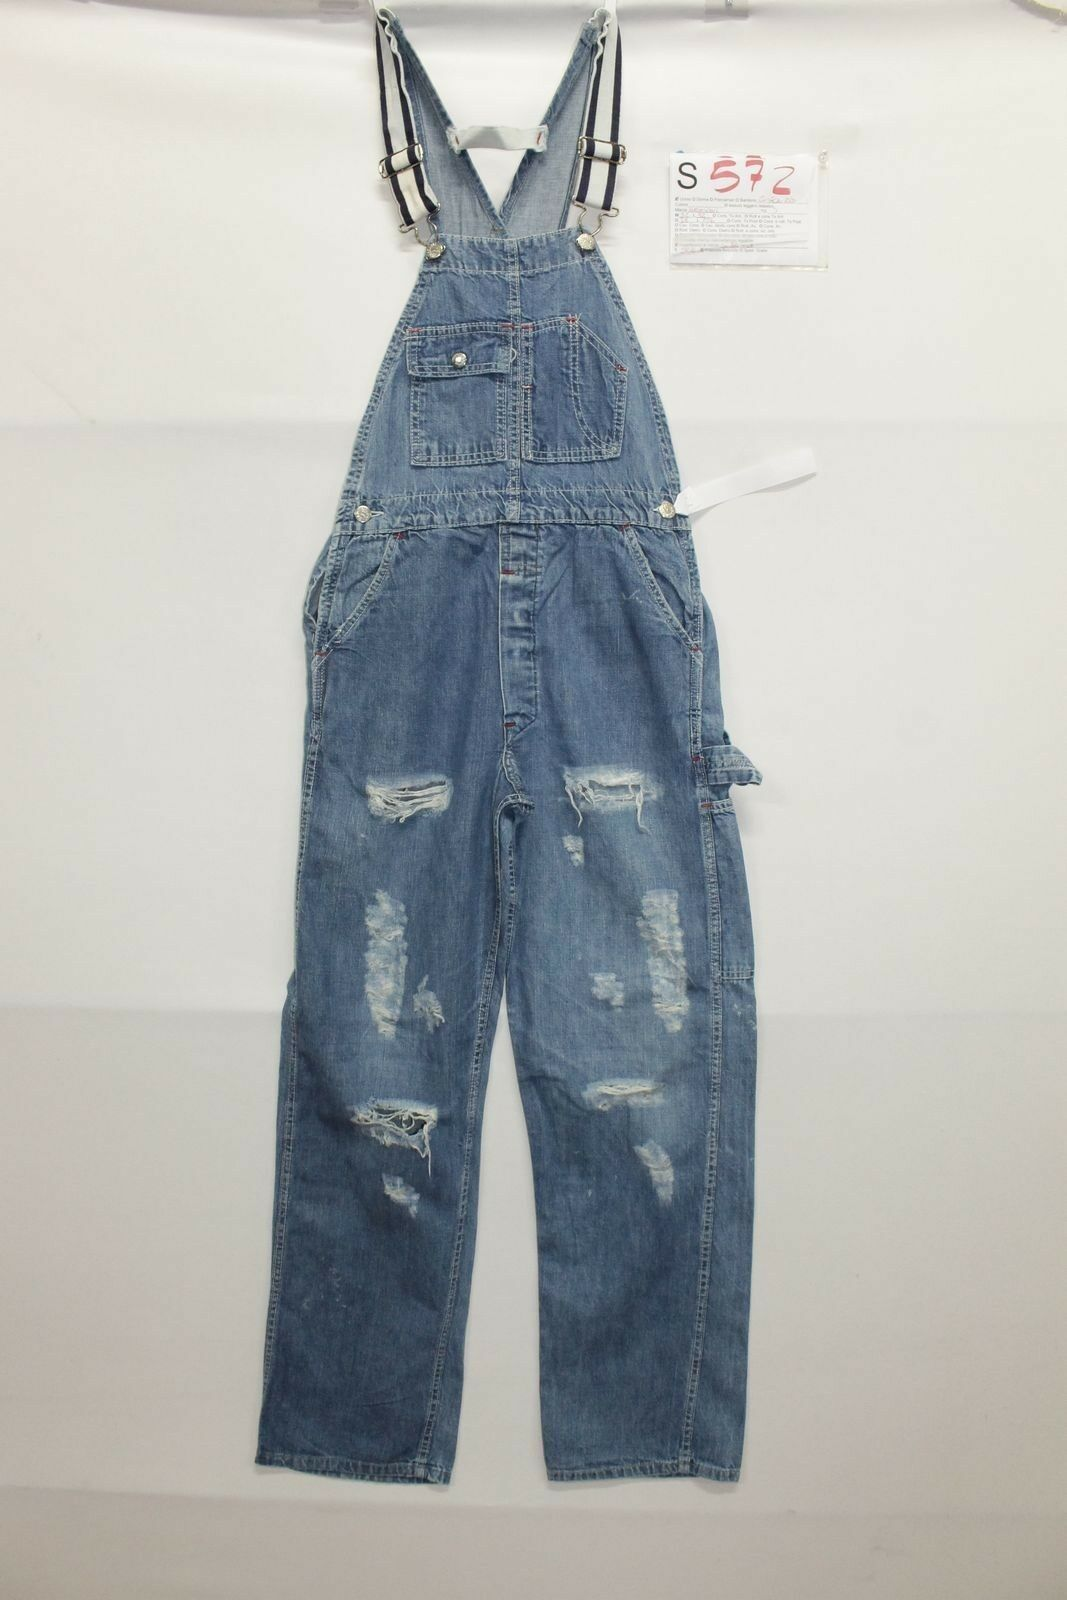 Dungarees MADE WELL (Cod.S572)size S W32 L32 Jeans Short used vintage